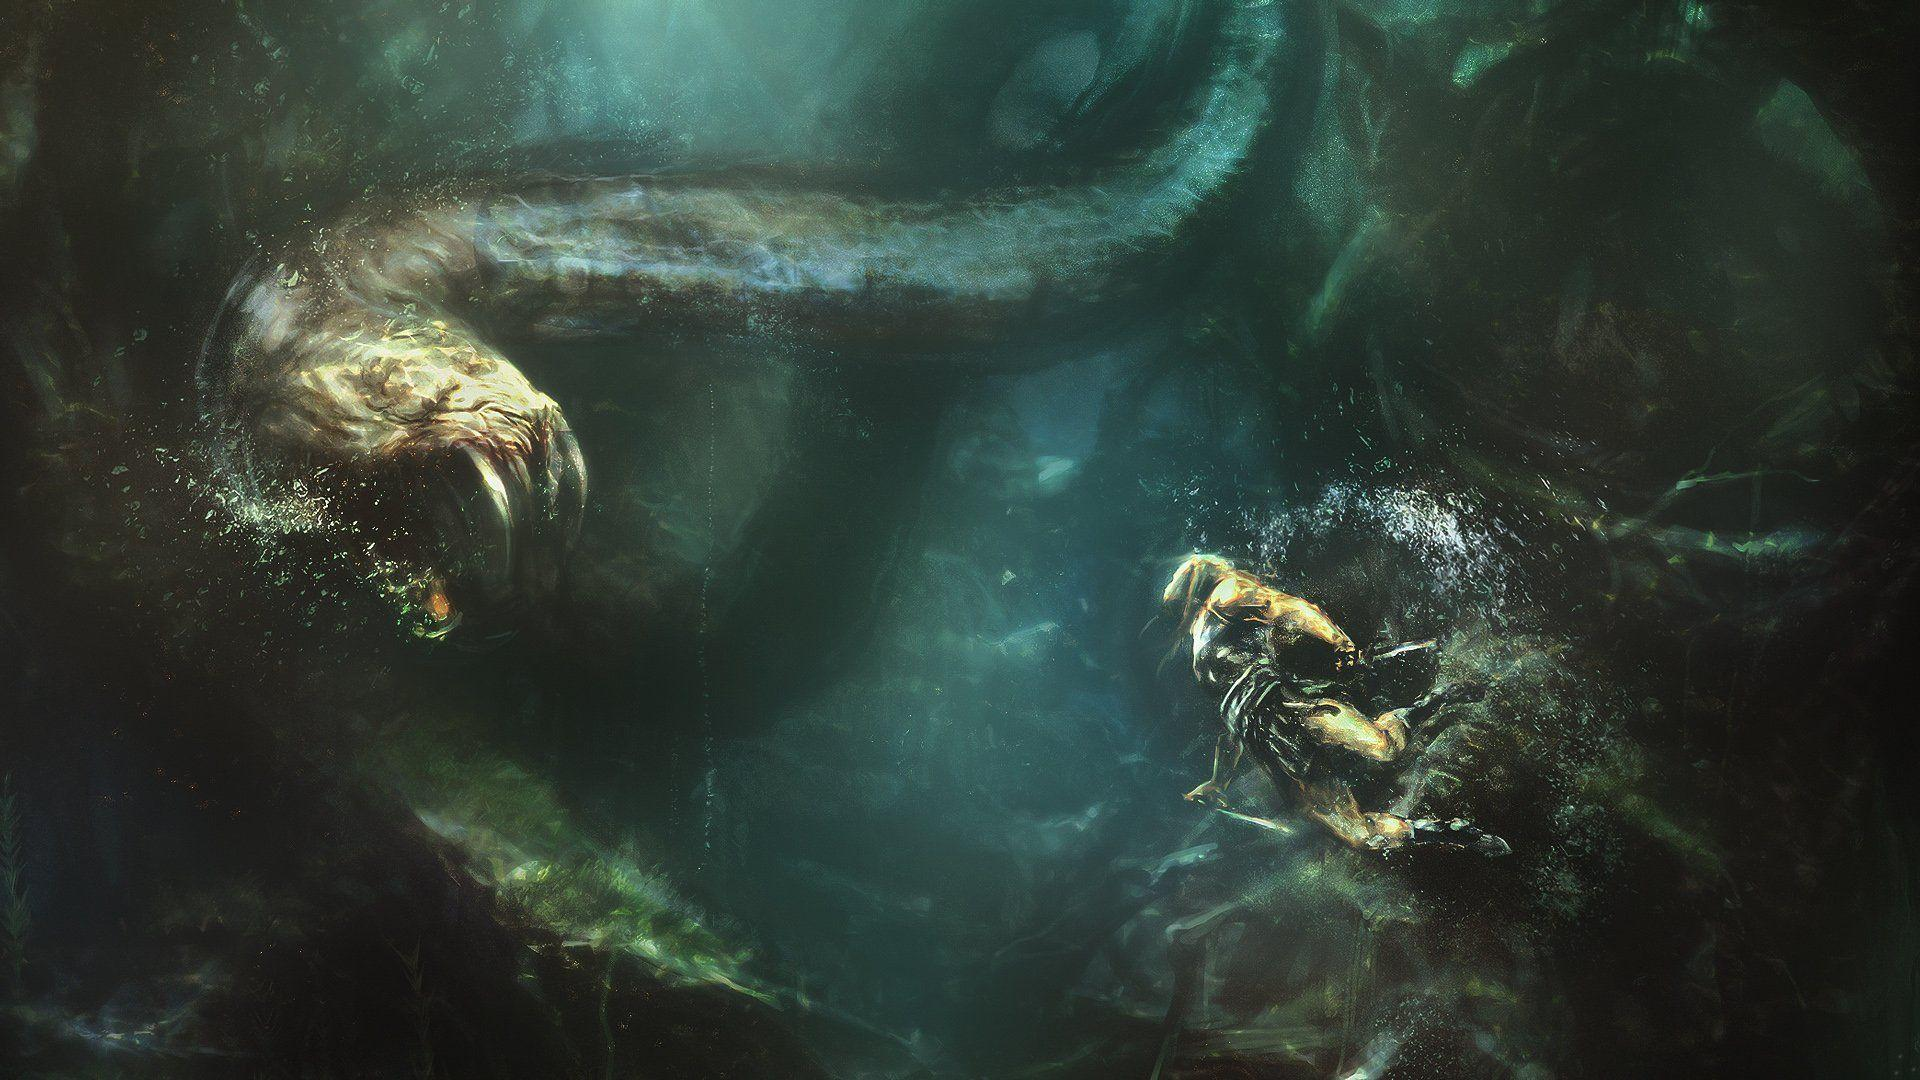 Sea Monster Full HD Wallpaper and Background | 3508x2480 | ID:669206